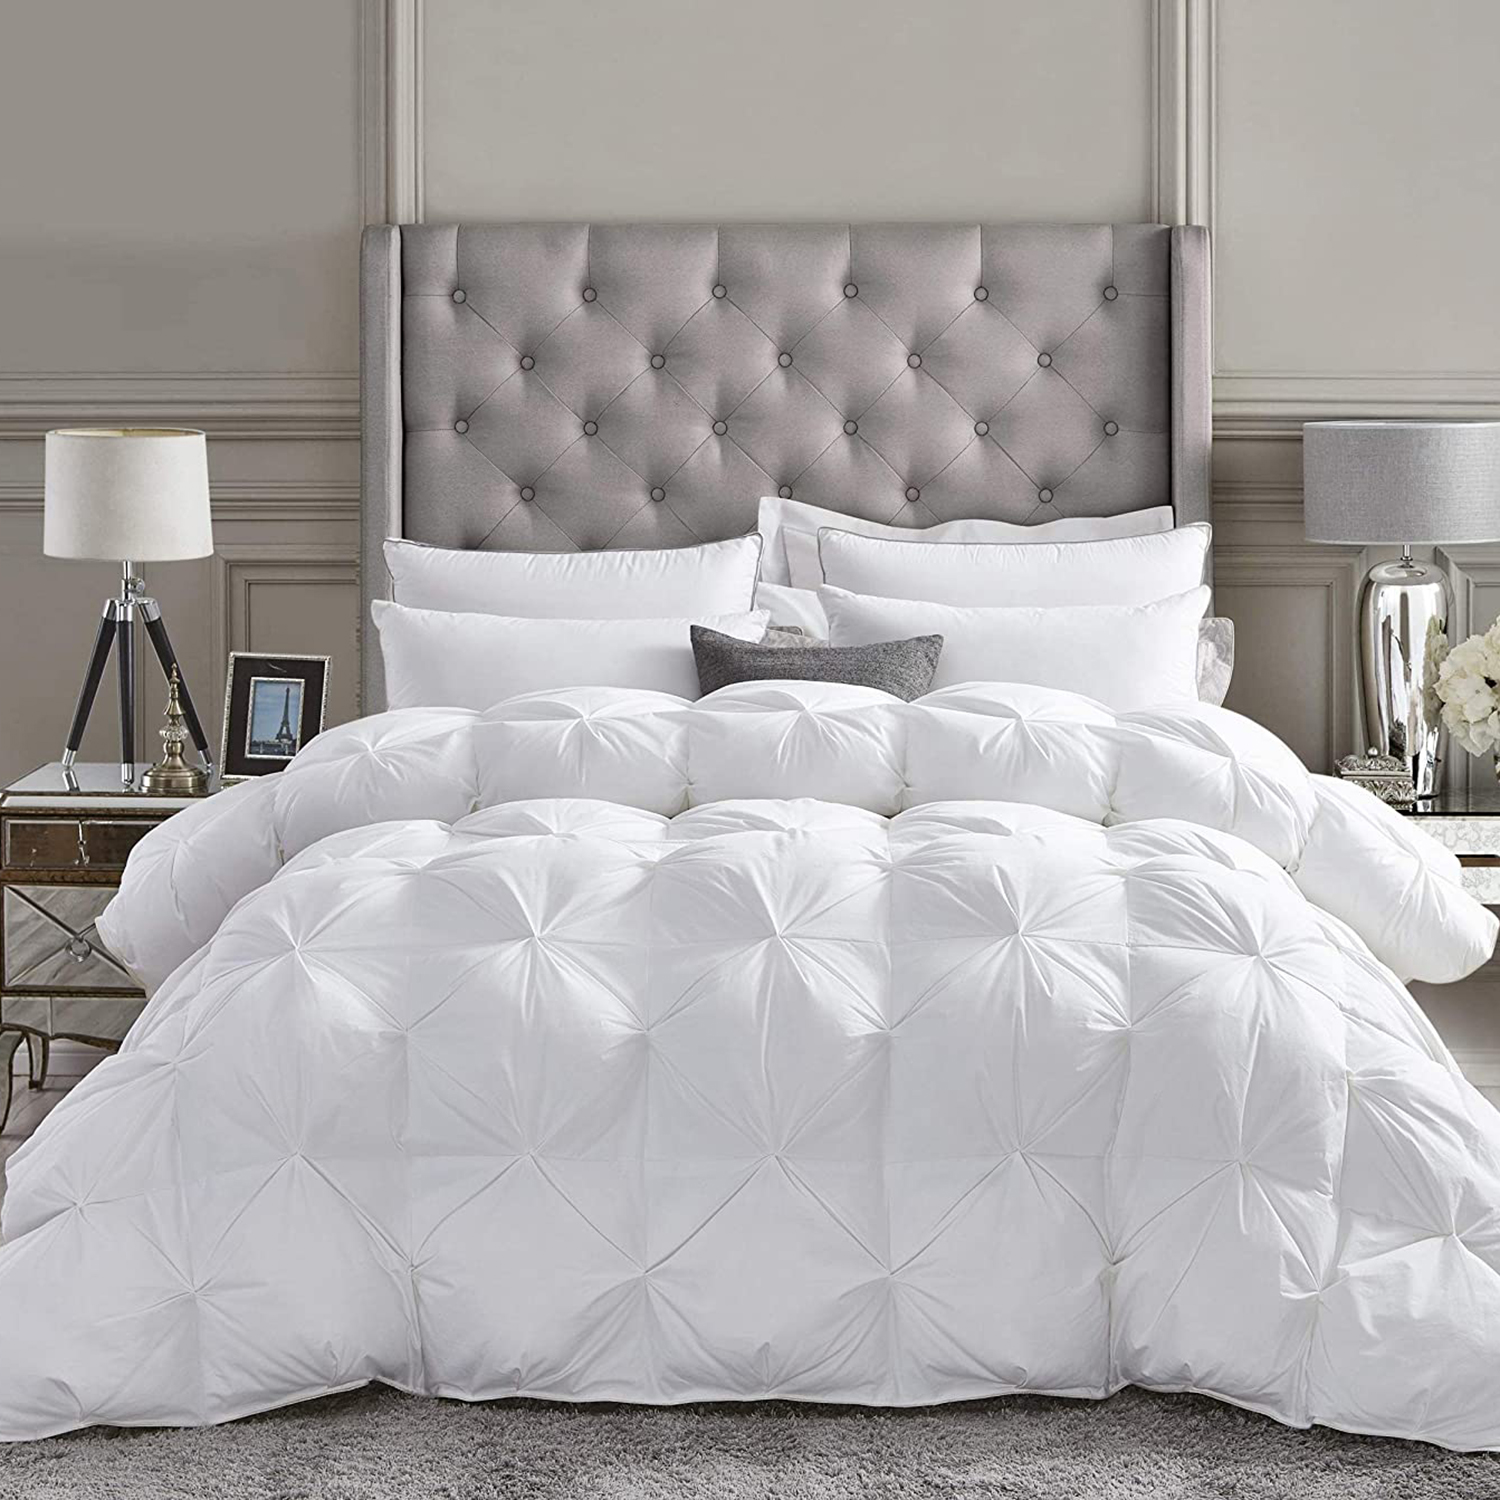 The 14 Best Cooling Comforters In 2021 According To Reviews Real Simple